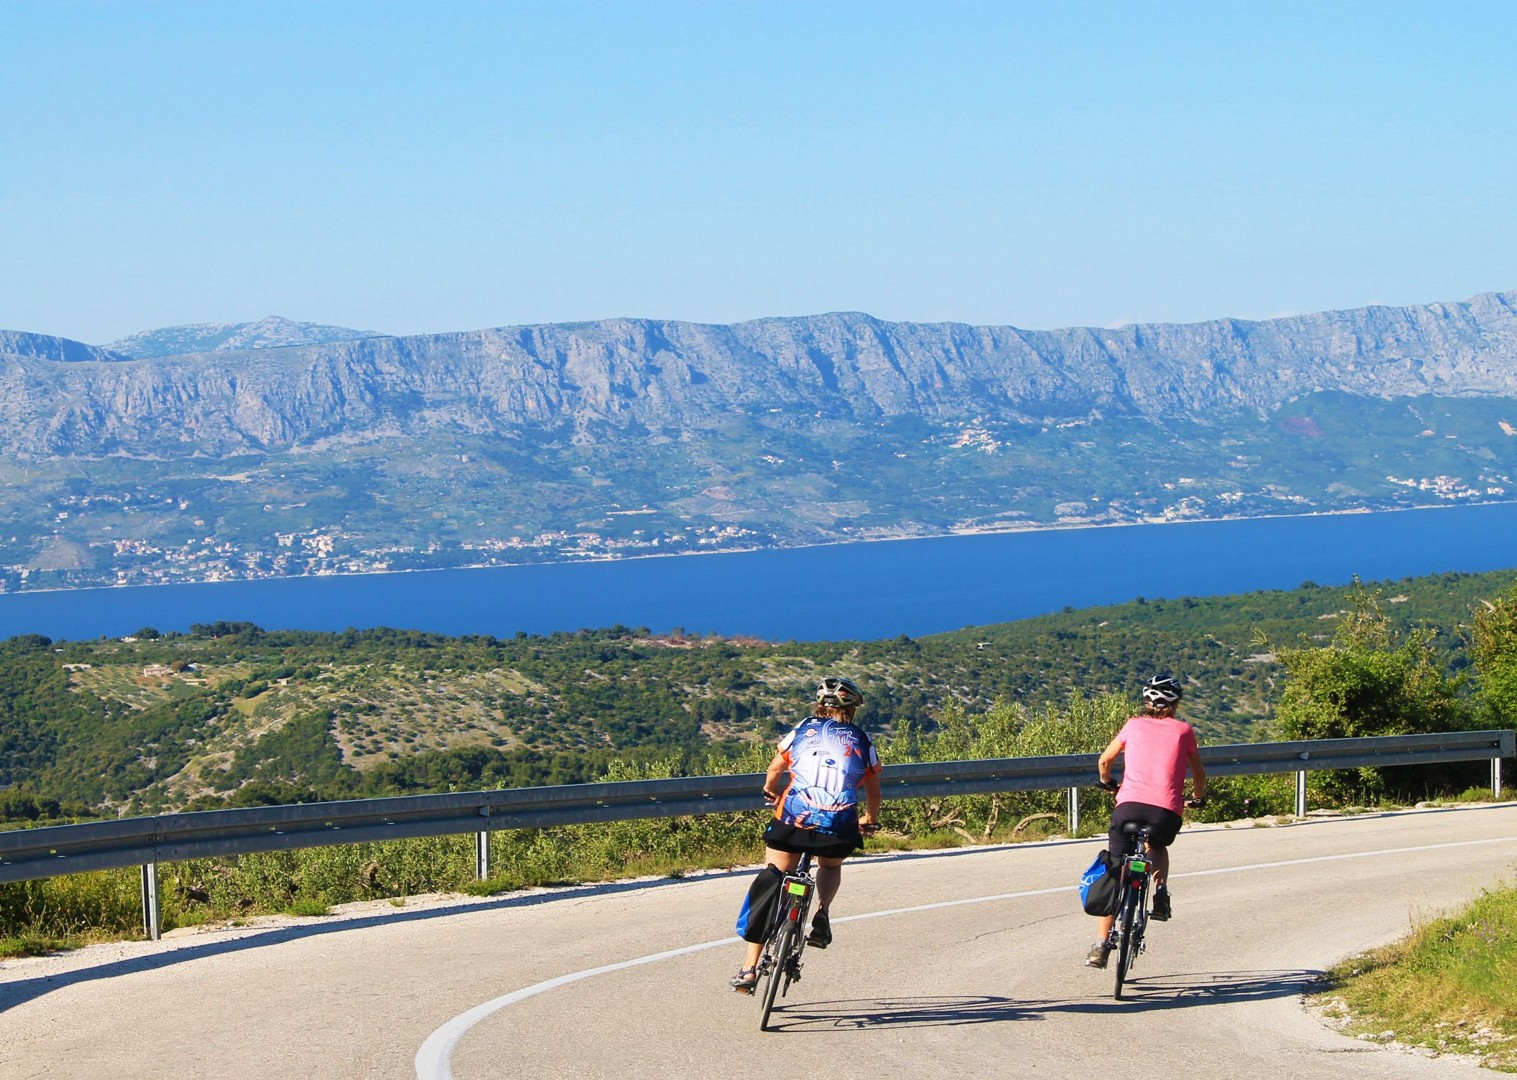 admire-adriatic-waters-boat-and-bike-holiday.jpg - Croatia - Dalmatian National Parks and Islands - Bike and Boat Holiday - Leisure Cycling